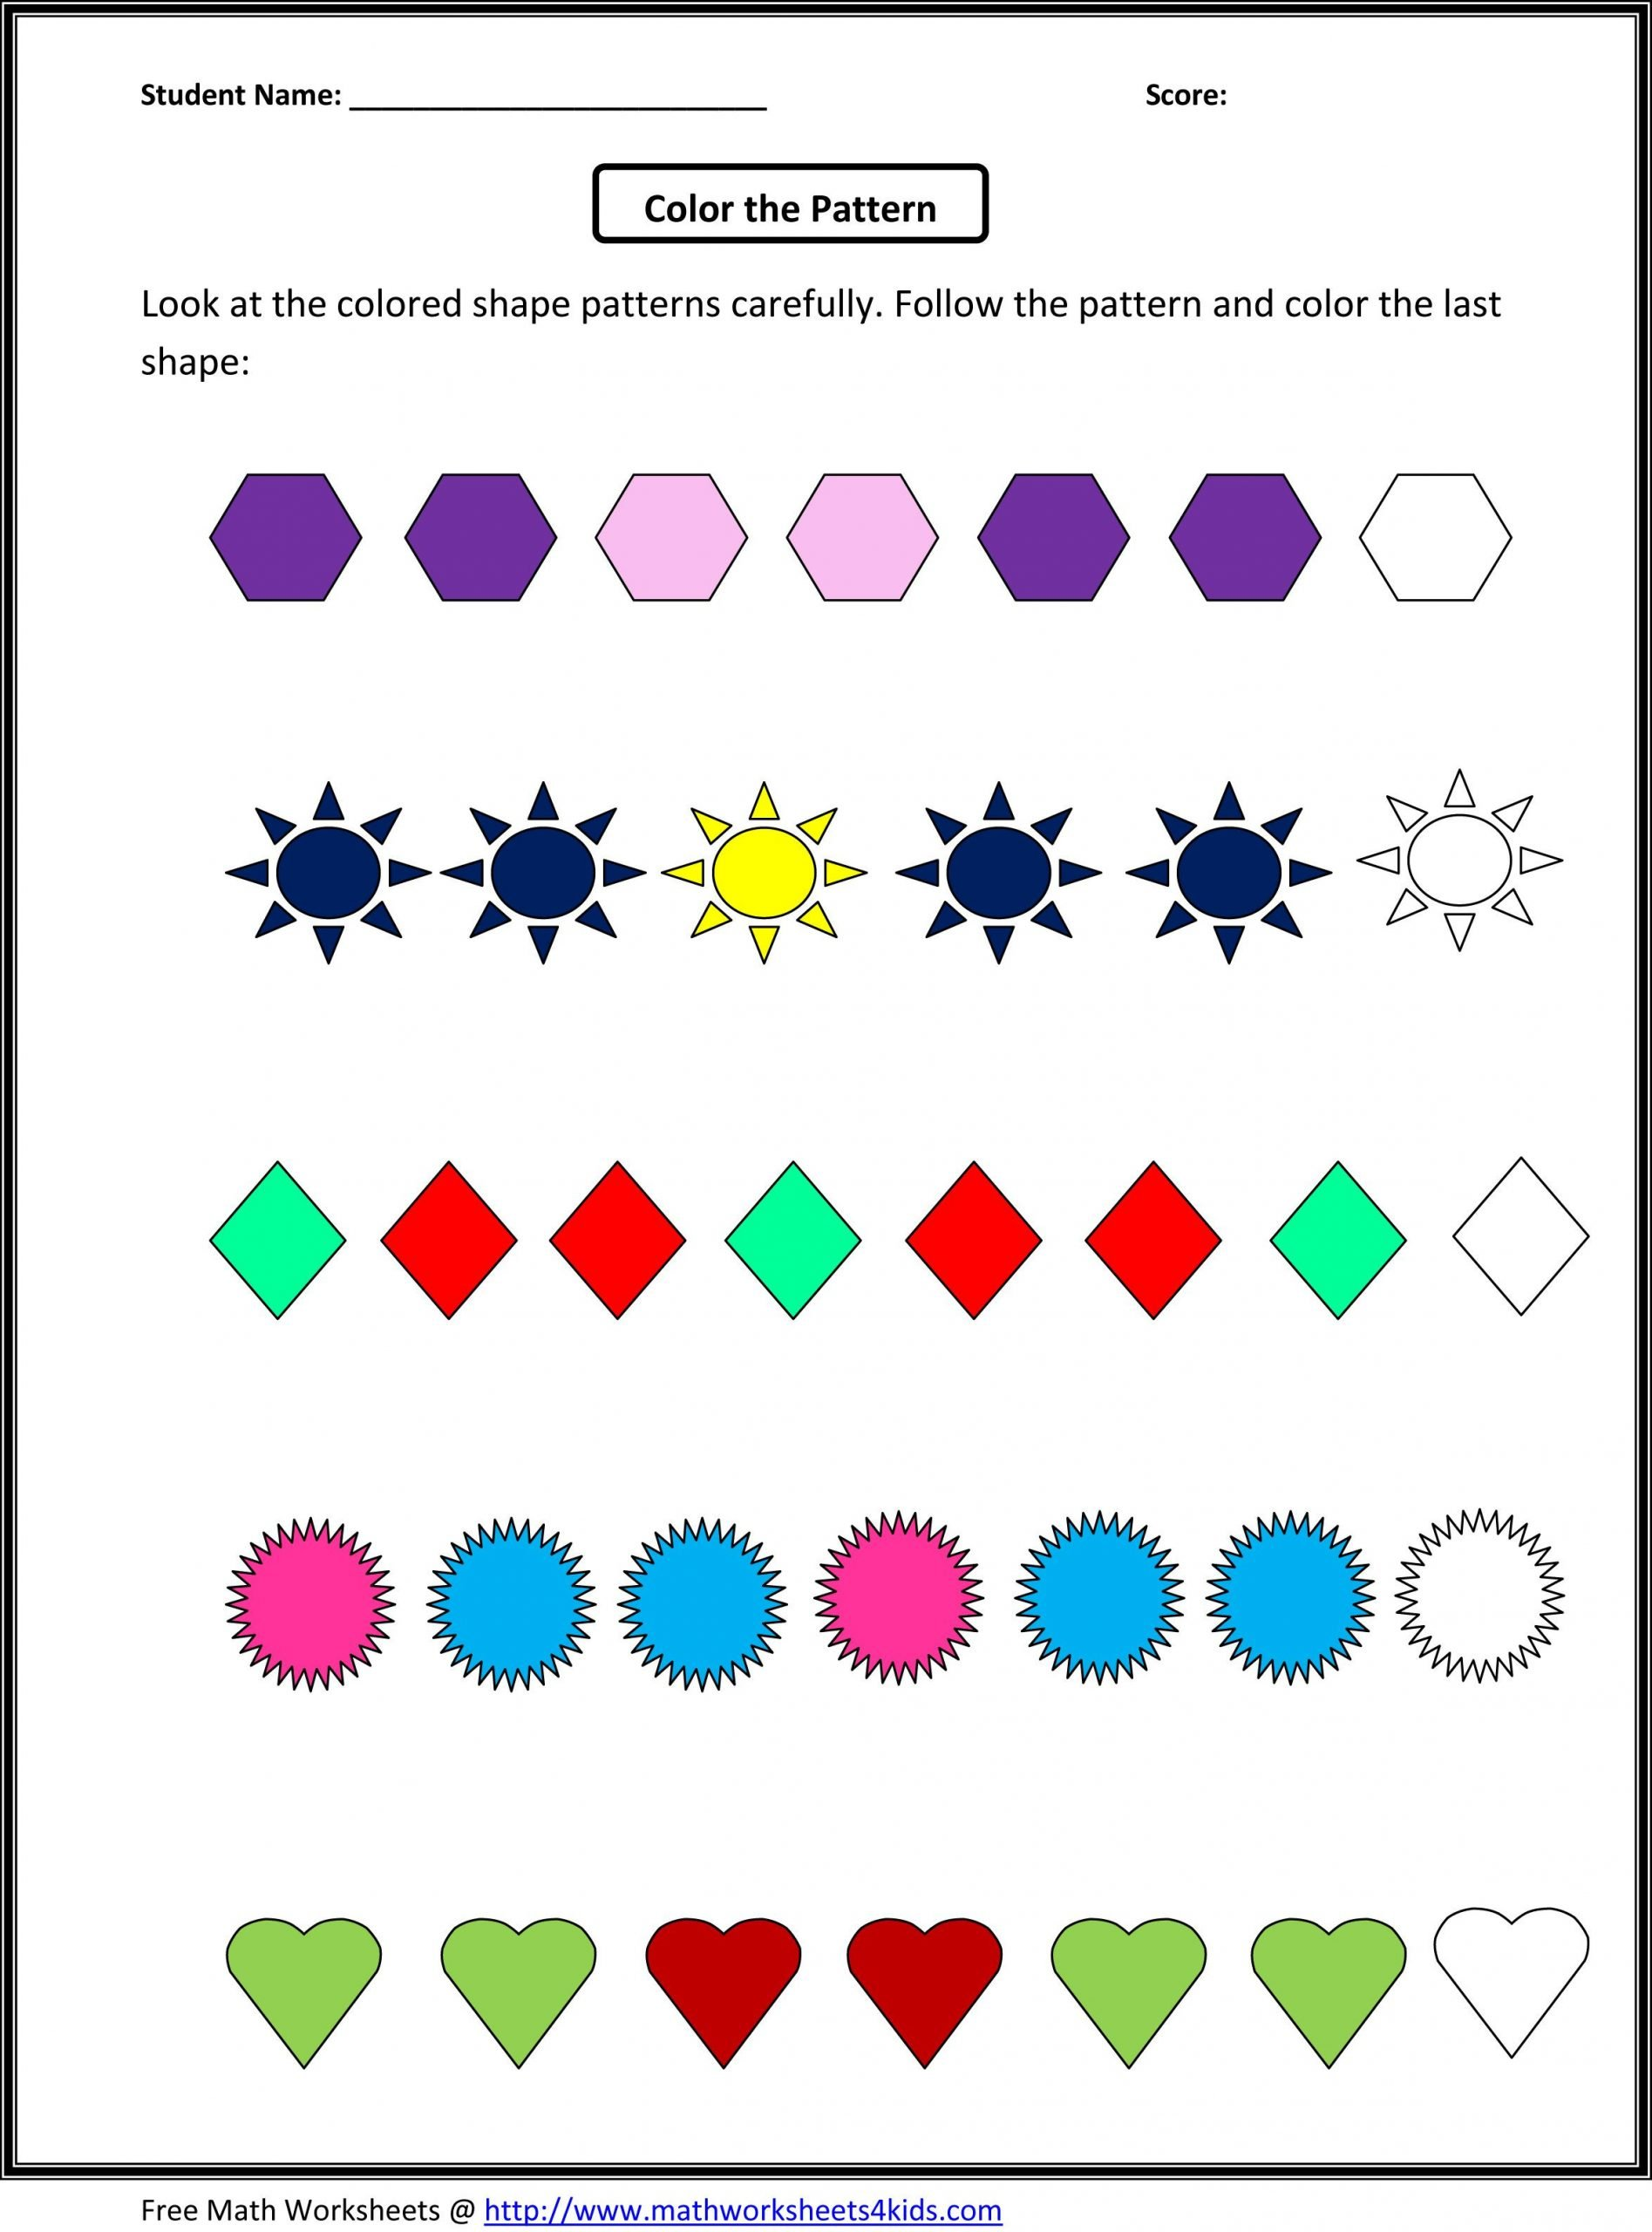 Geometric Shape Patterns Worksheet Perimeter Of Irregular Shapes